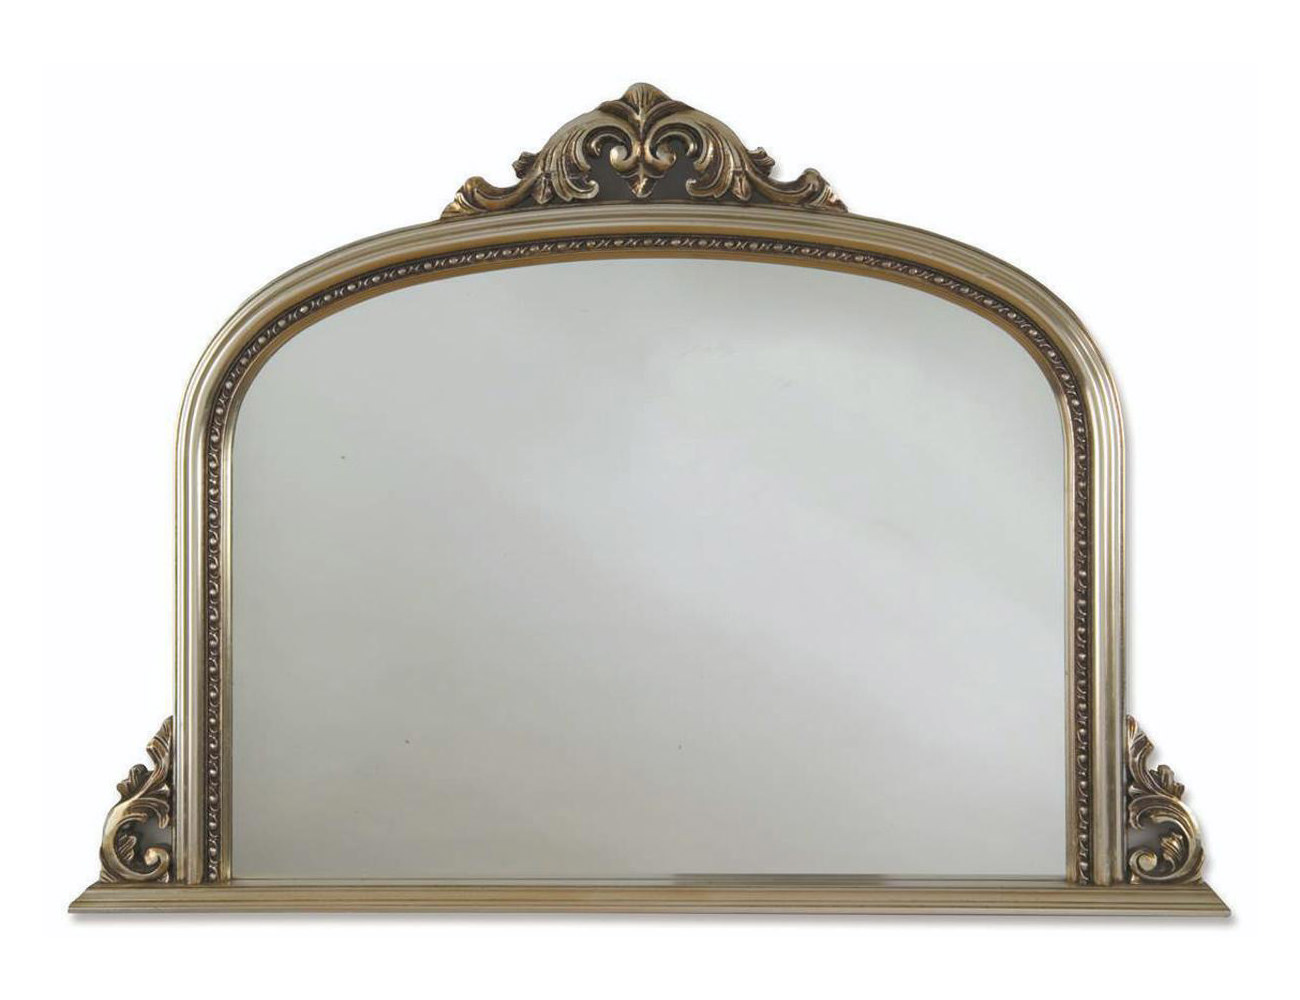 Heritage archway champagne silver wooden frame mirror 1270 for Silver framed mirror